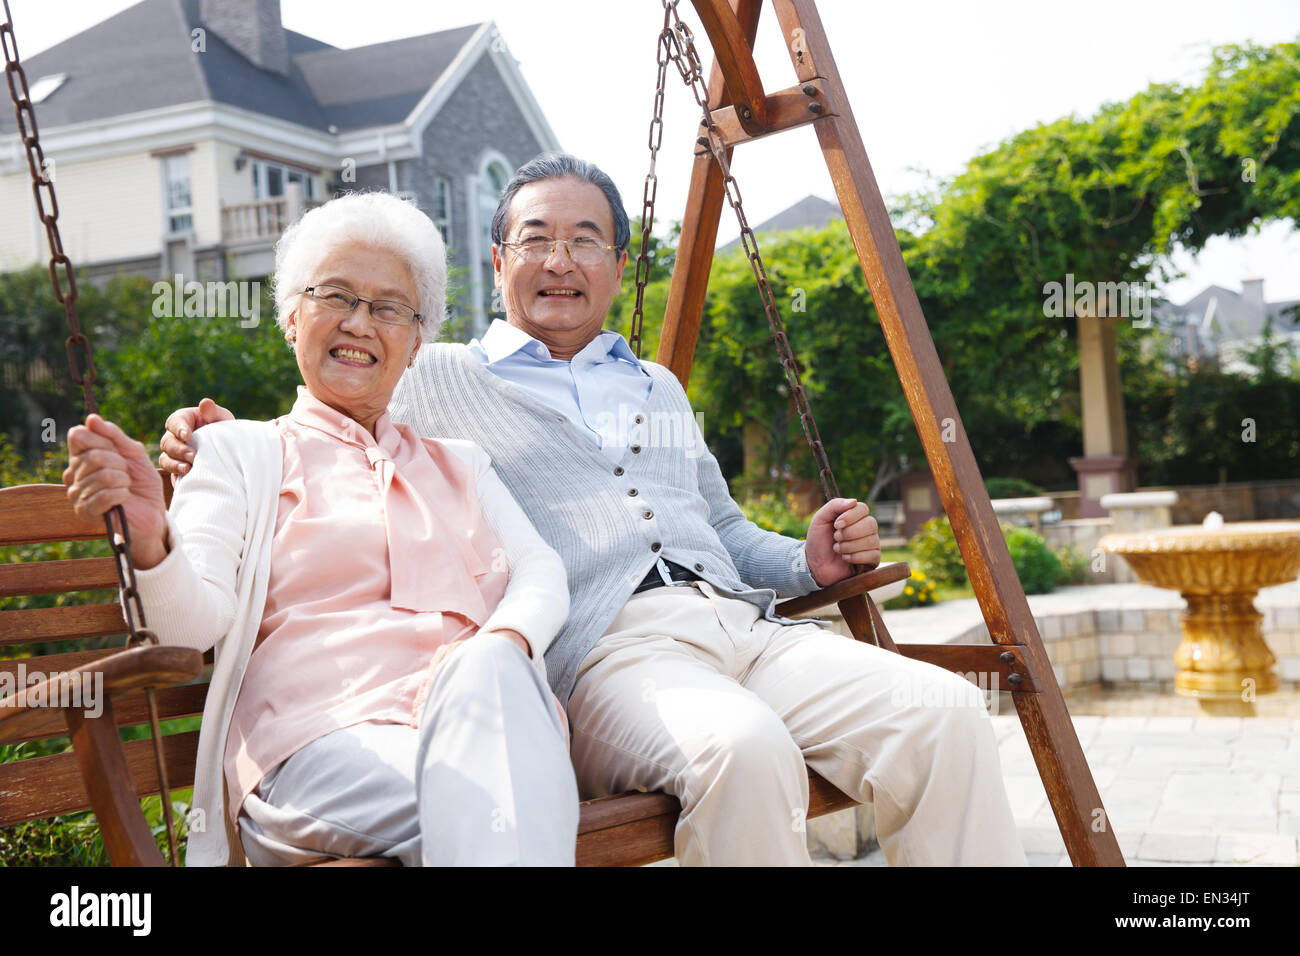 Swing Old Couple Stock Photos Amp Swing Old Couple Stock